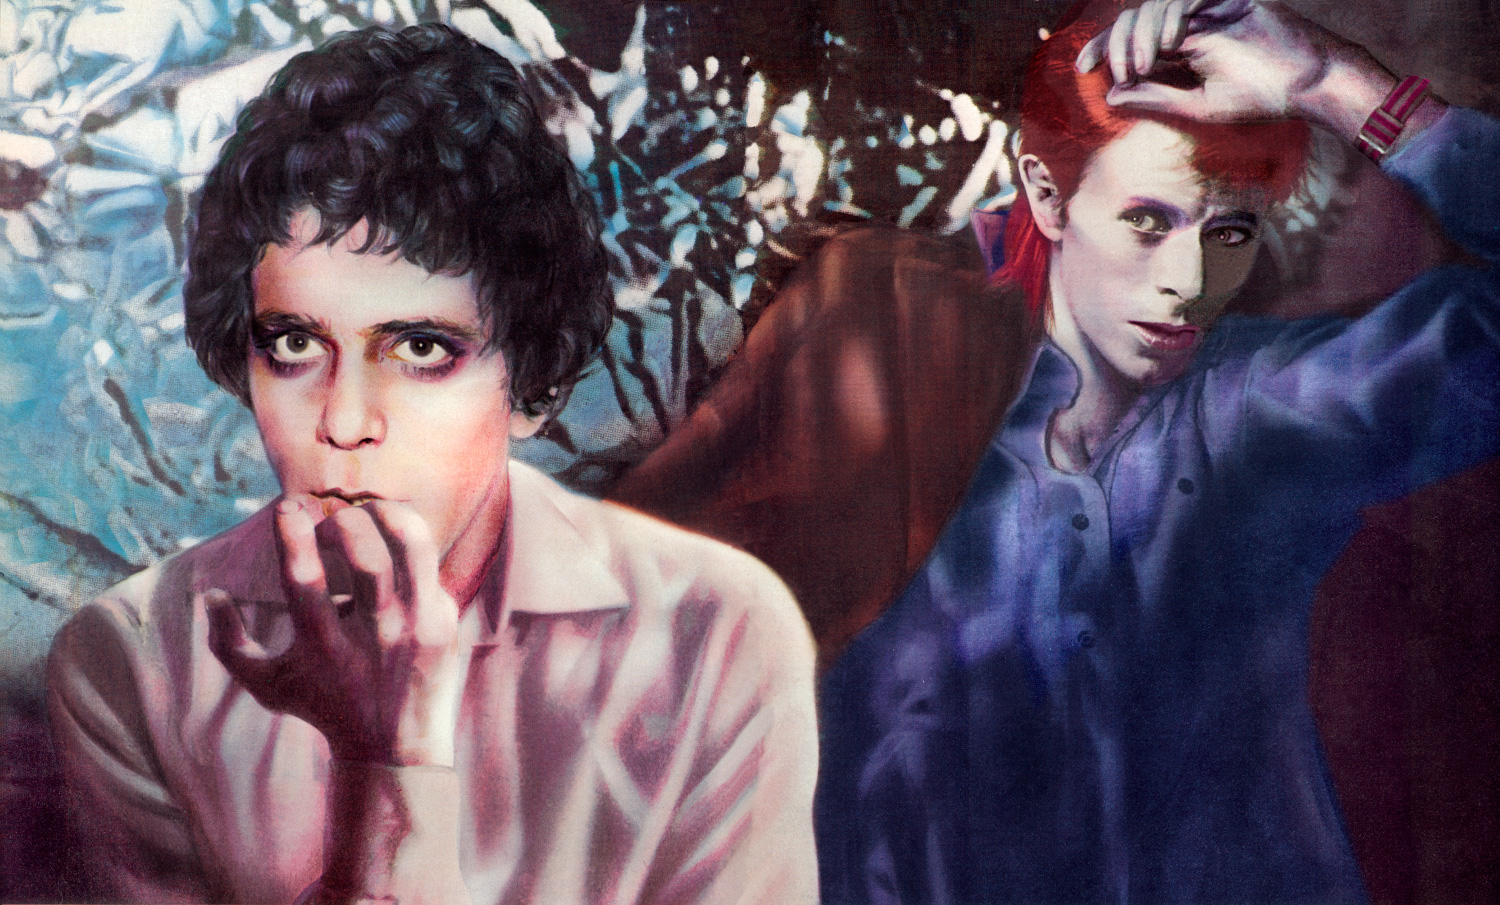 Lou Reed and David Bowie by Guy Peellaert, from  Rock Dreams (1970-1973).